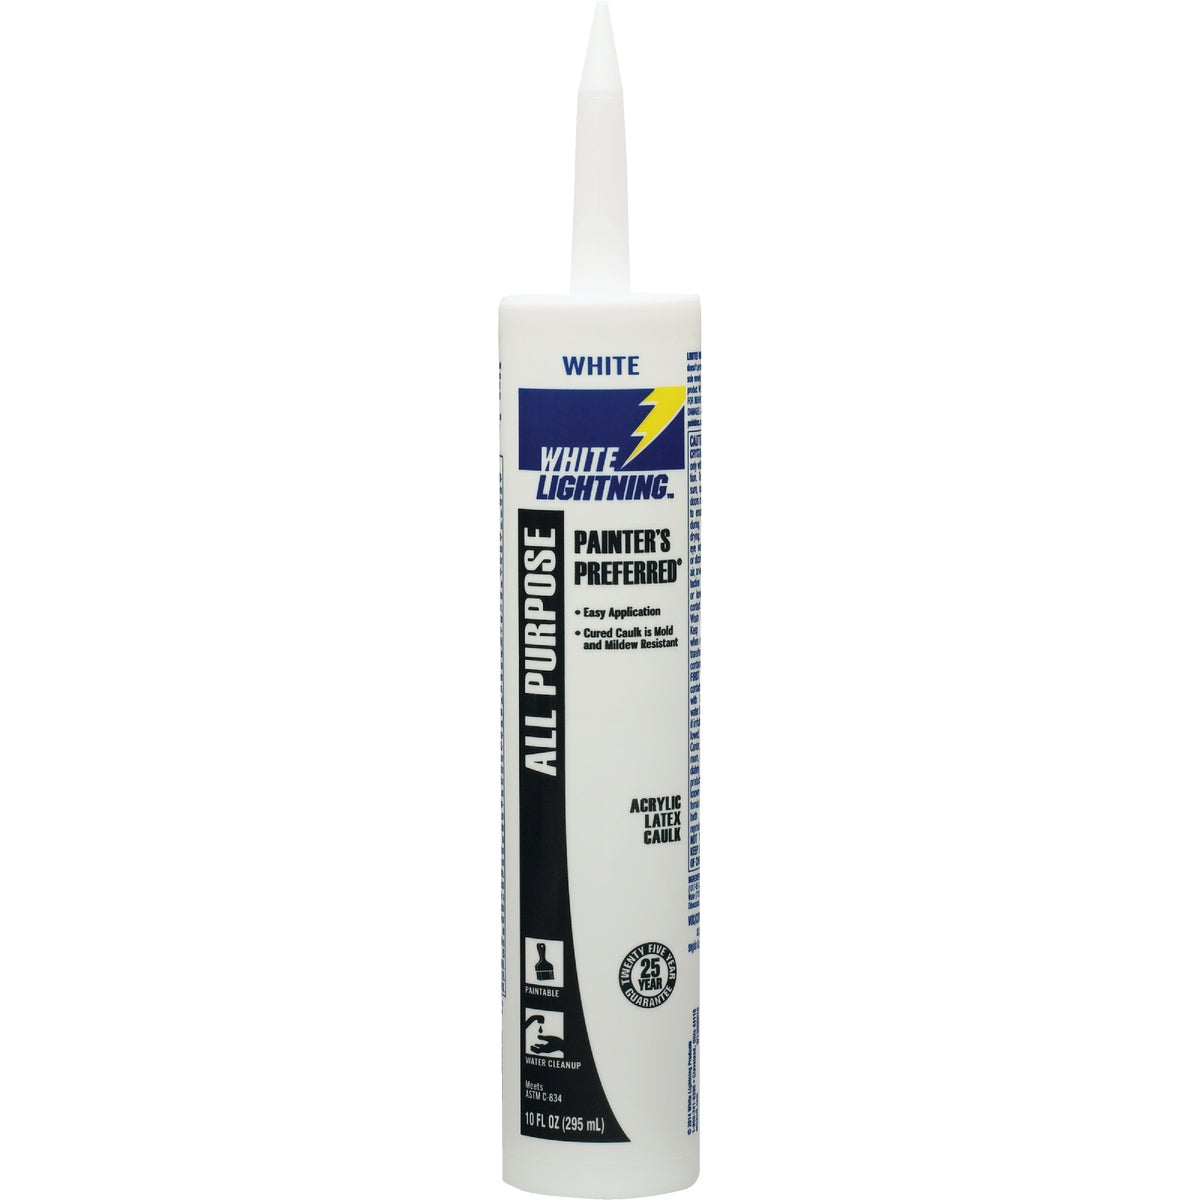 10OZ WHT PAINTERS CAULK - WL30010-0 by White Lightning Prod